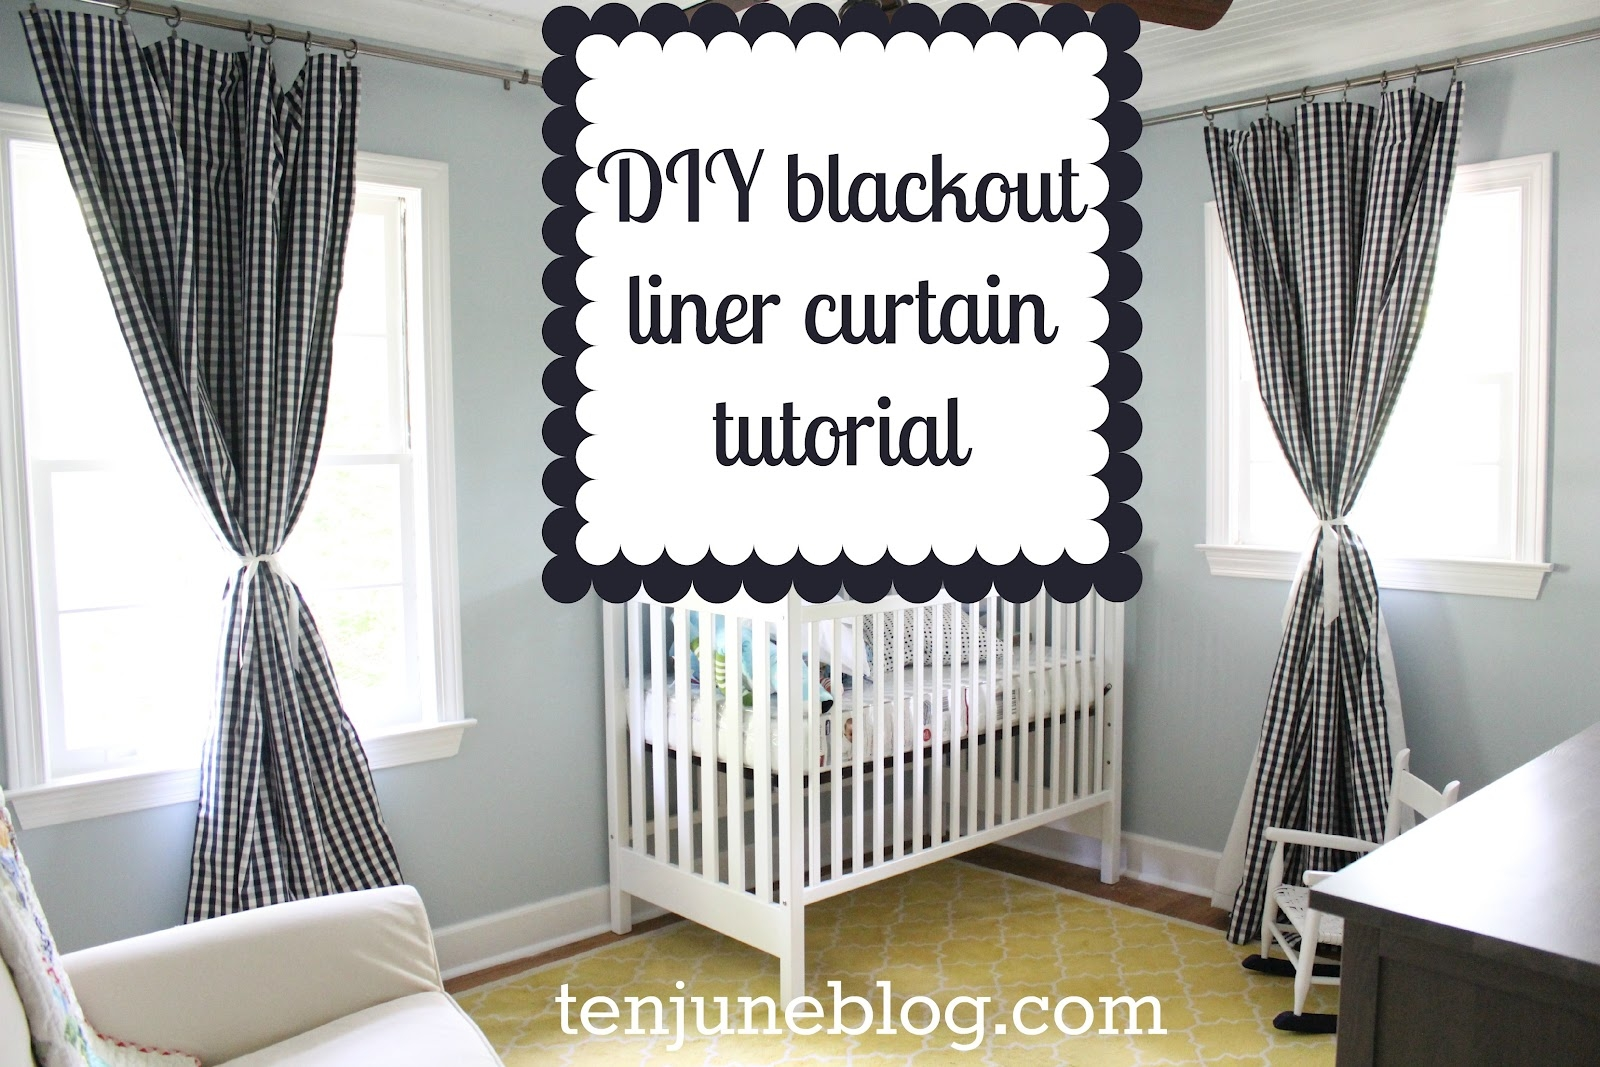 Nursery Enchanting Nursery Decorating Ideas With Blackout Pertaining To Blackout Curtains For Baby Room (Image 20 of 25)